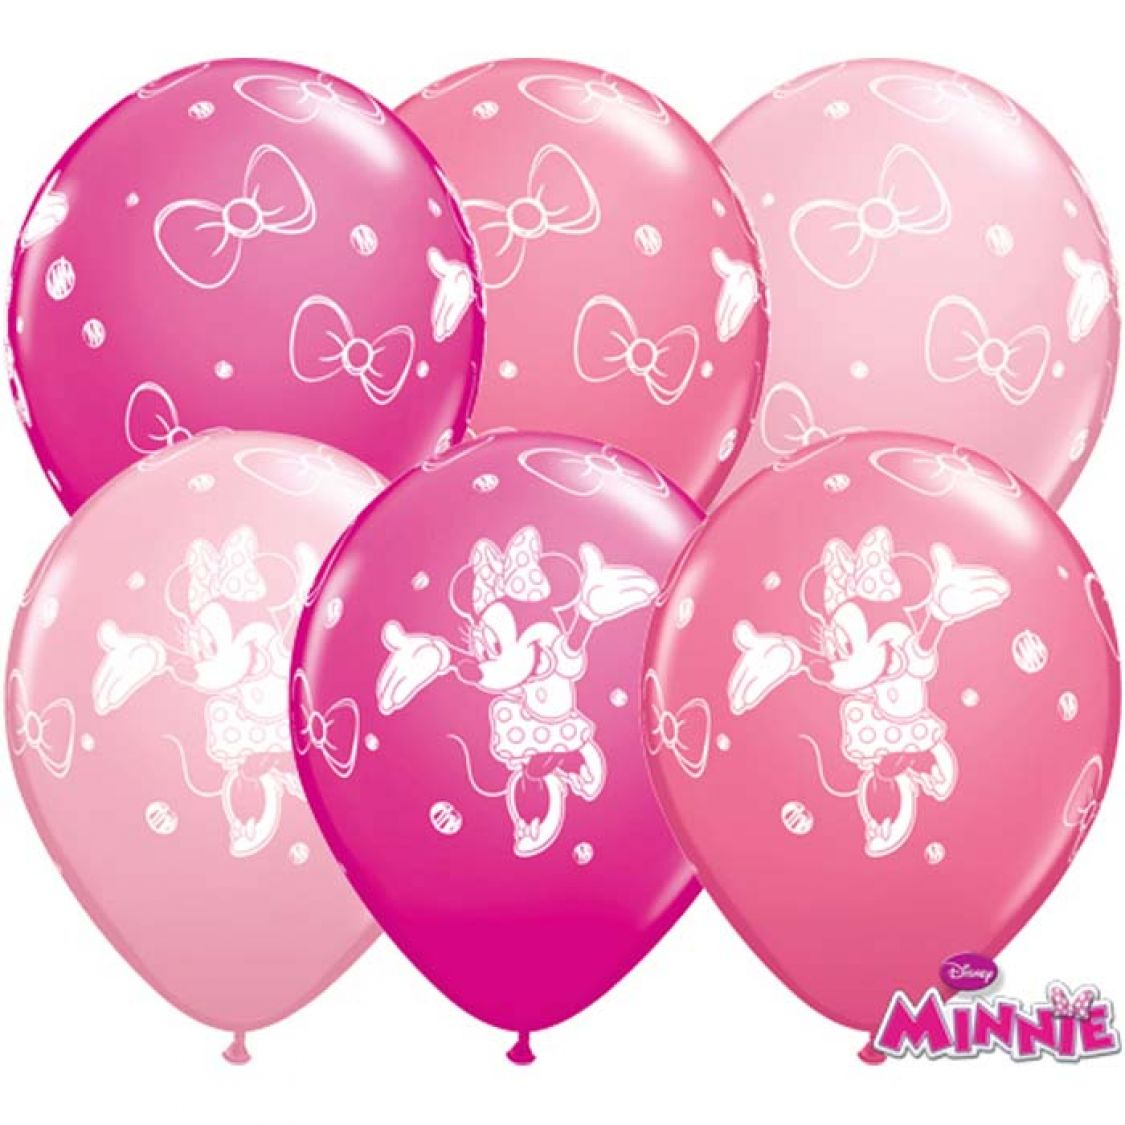 Ballon Minnie Latex